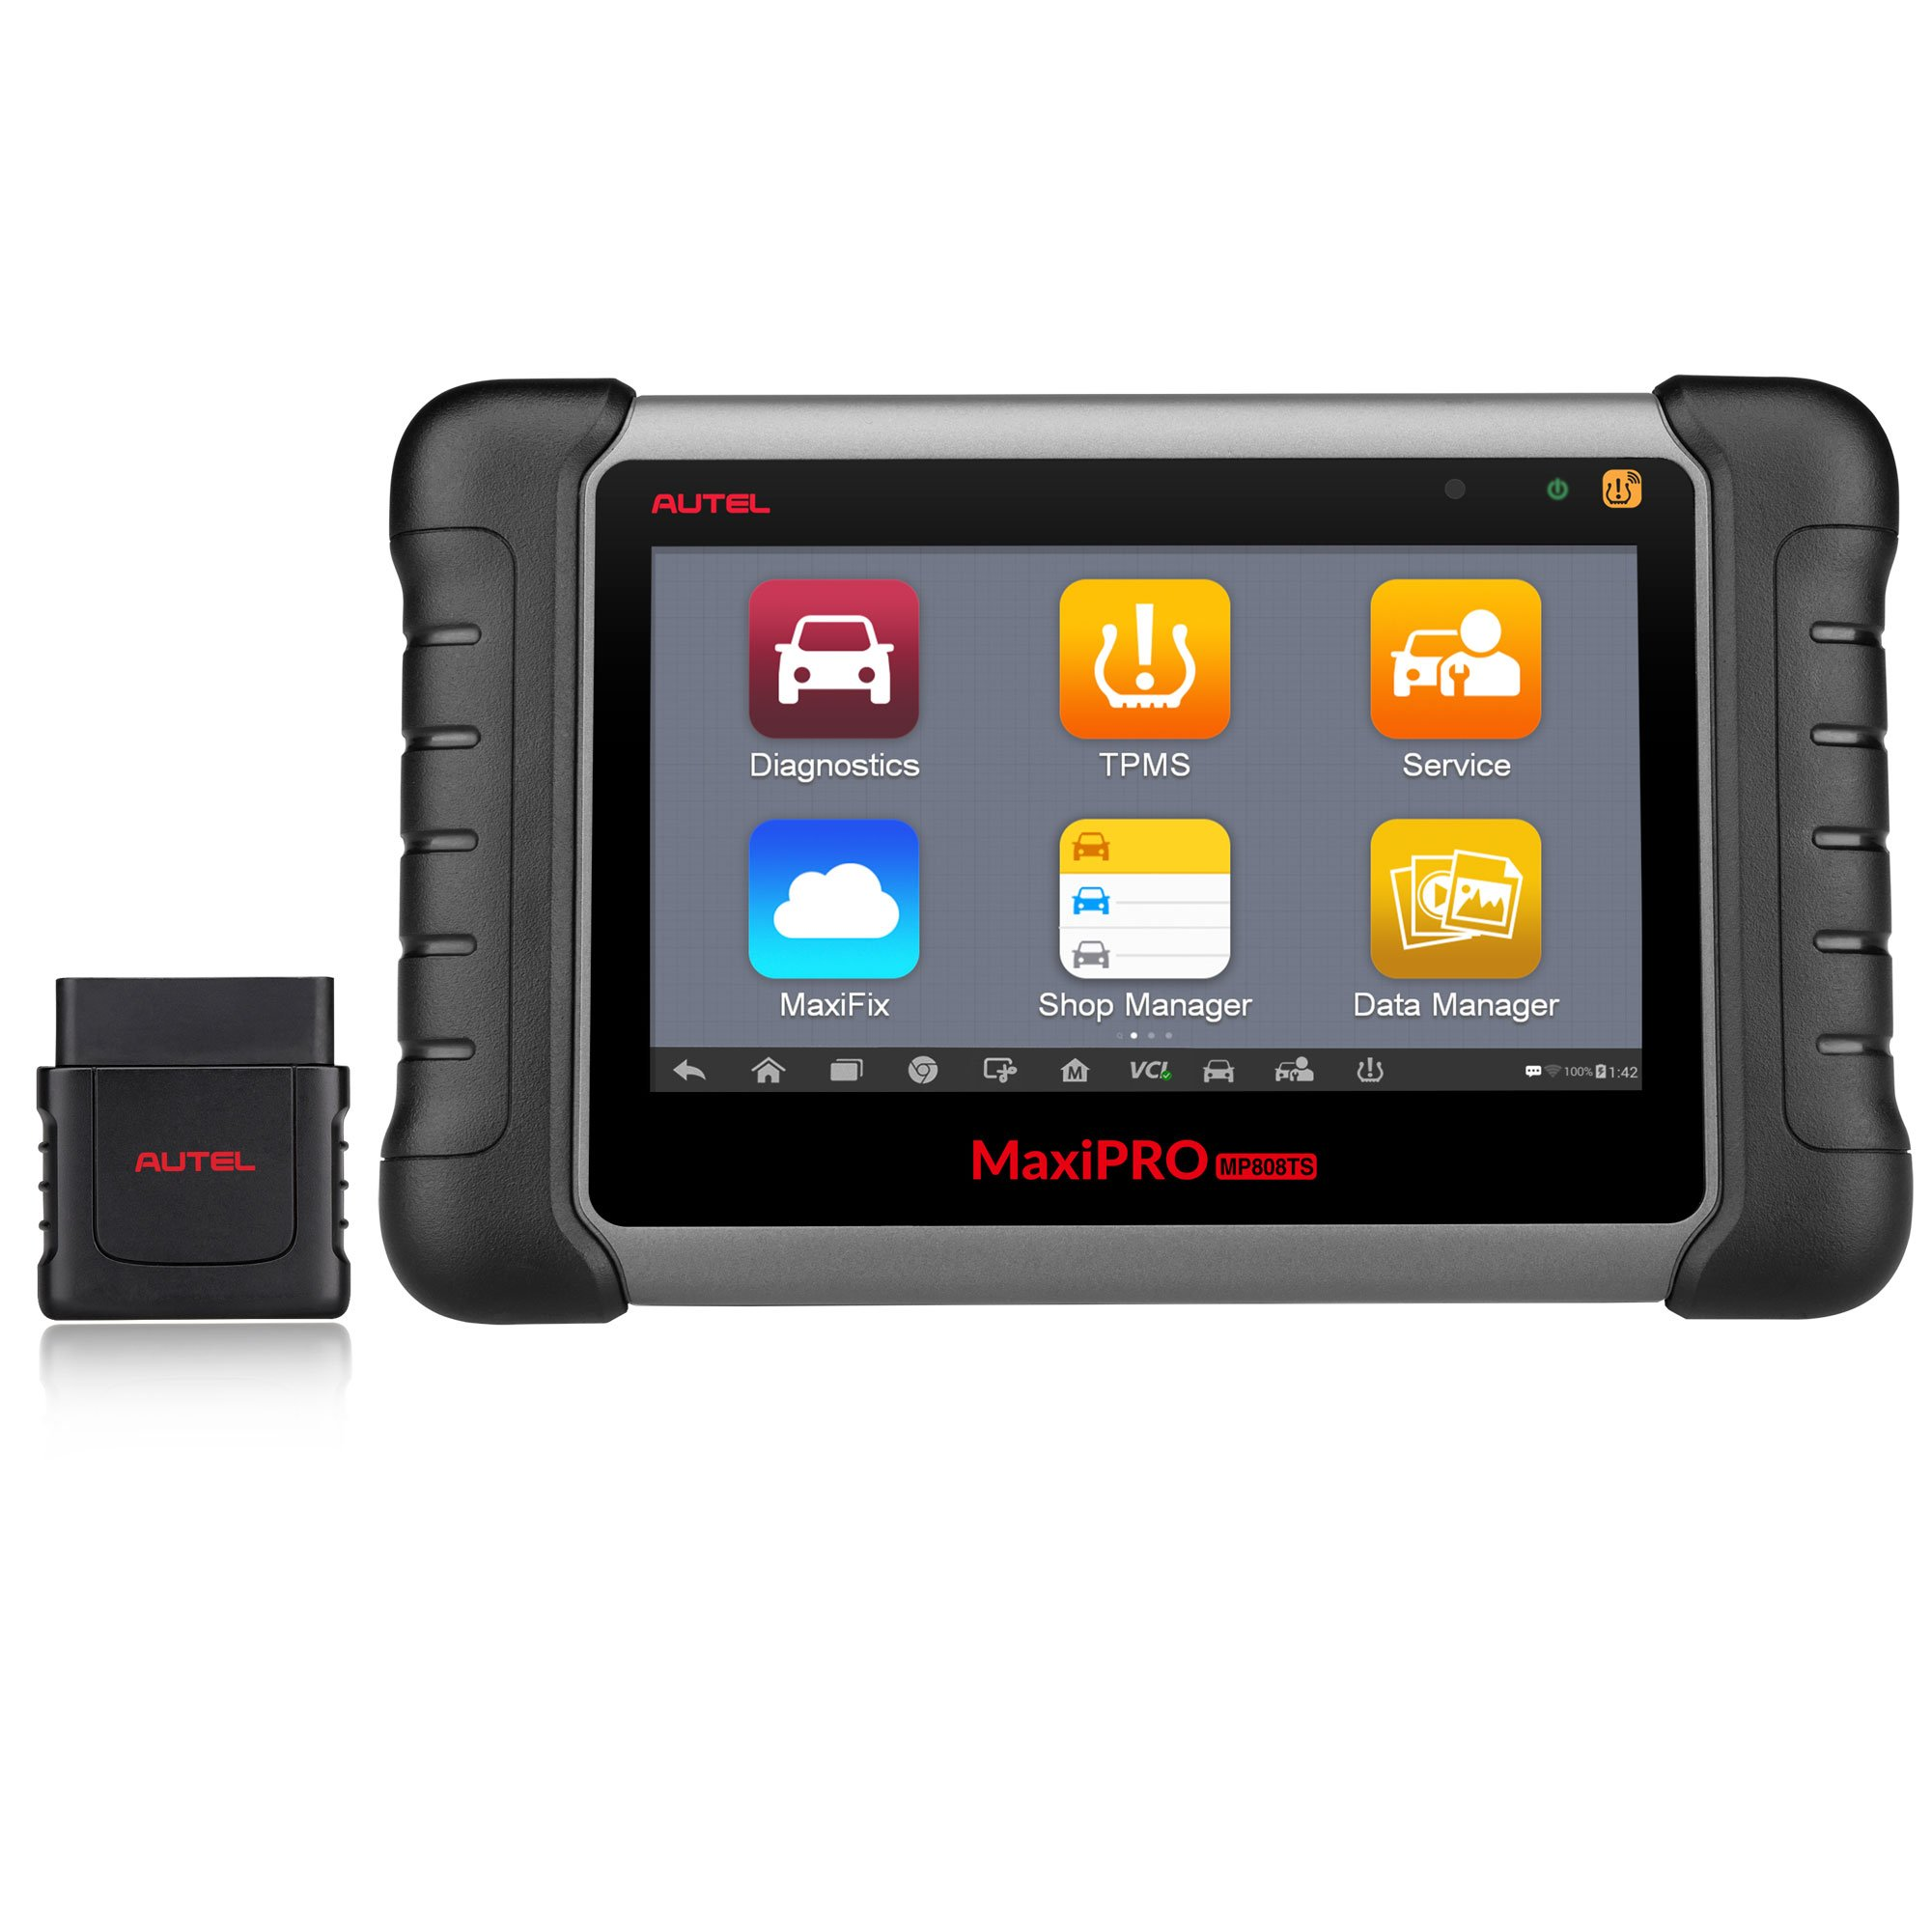 Autel MaxiPRO MP808TS Automotive Diagnostic scanner tool (Prime version of Maxisys MS906TS) combining Comprehensive TPMS Service Functionality and Advanced Diagnostics with Wireless Bluetooth